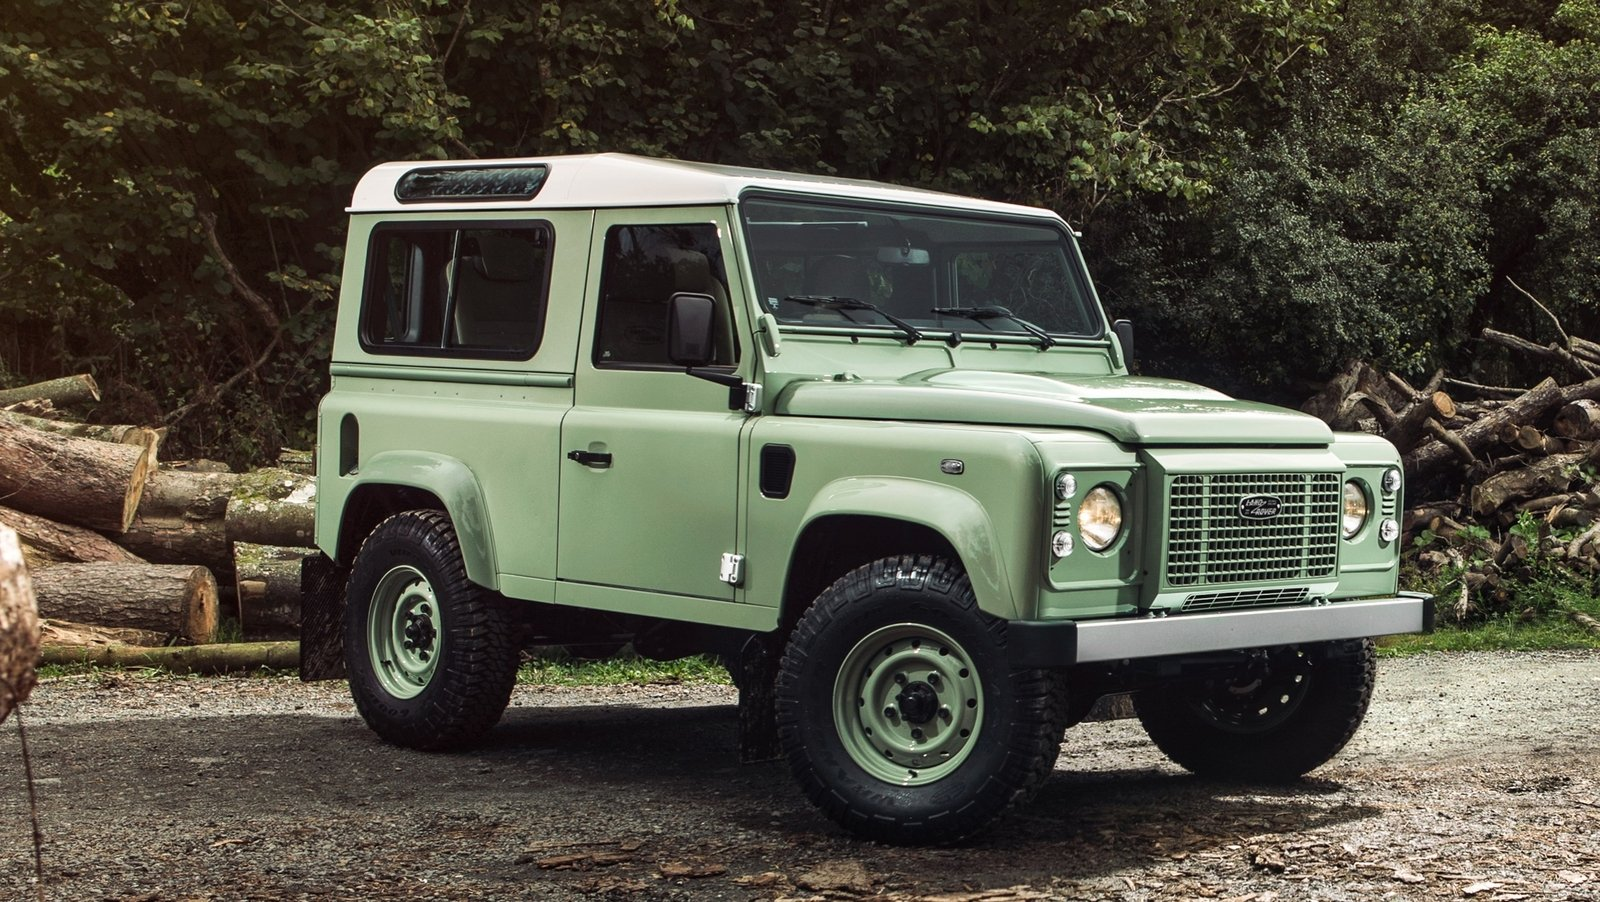 2015 Land Rover Defender Heritage Edition Review - Top Speed